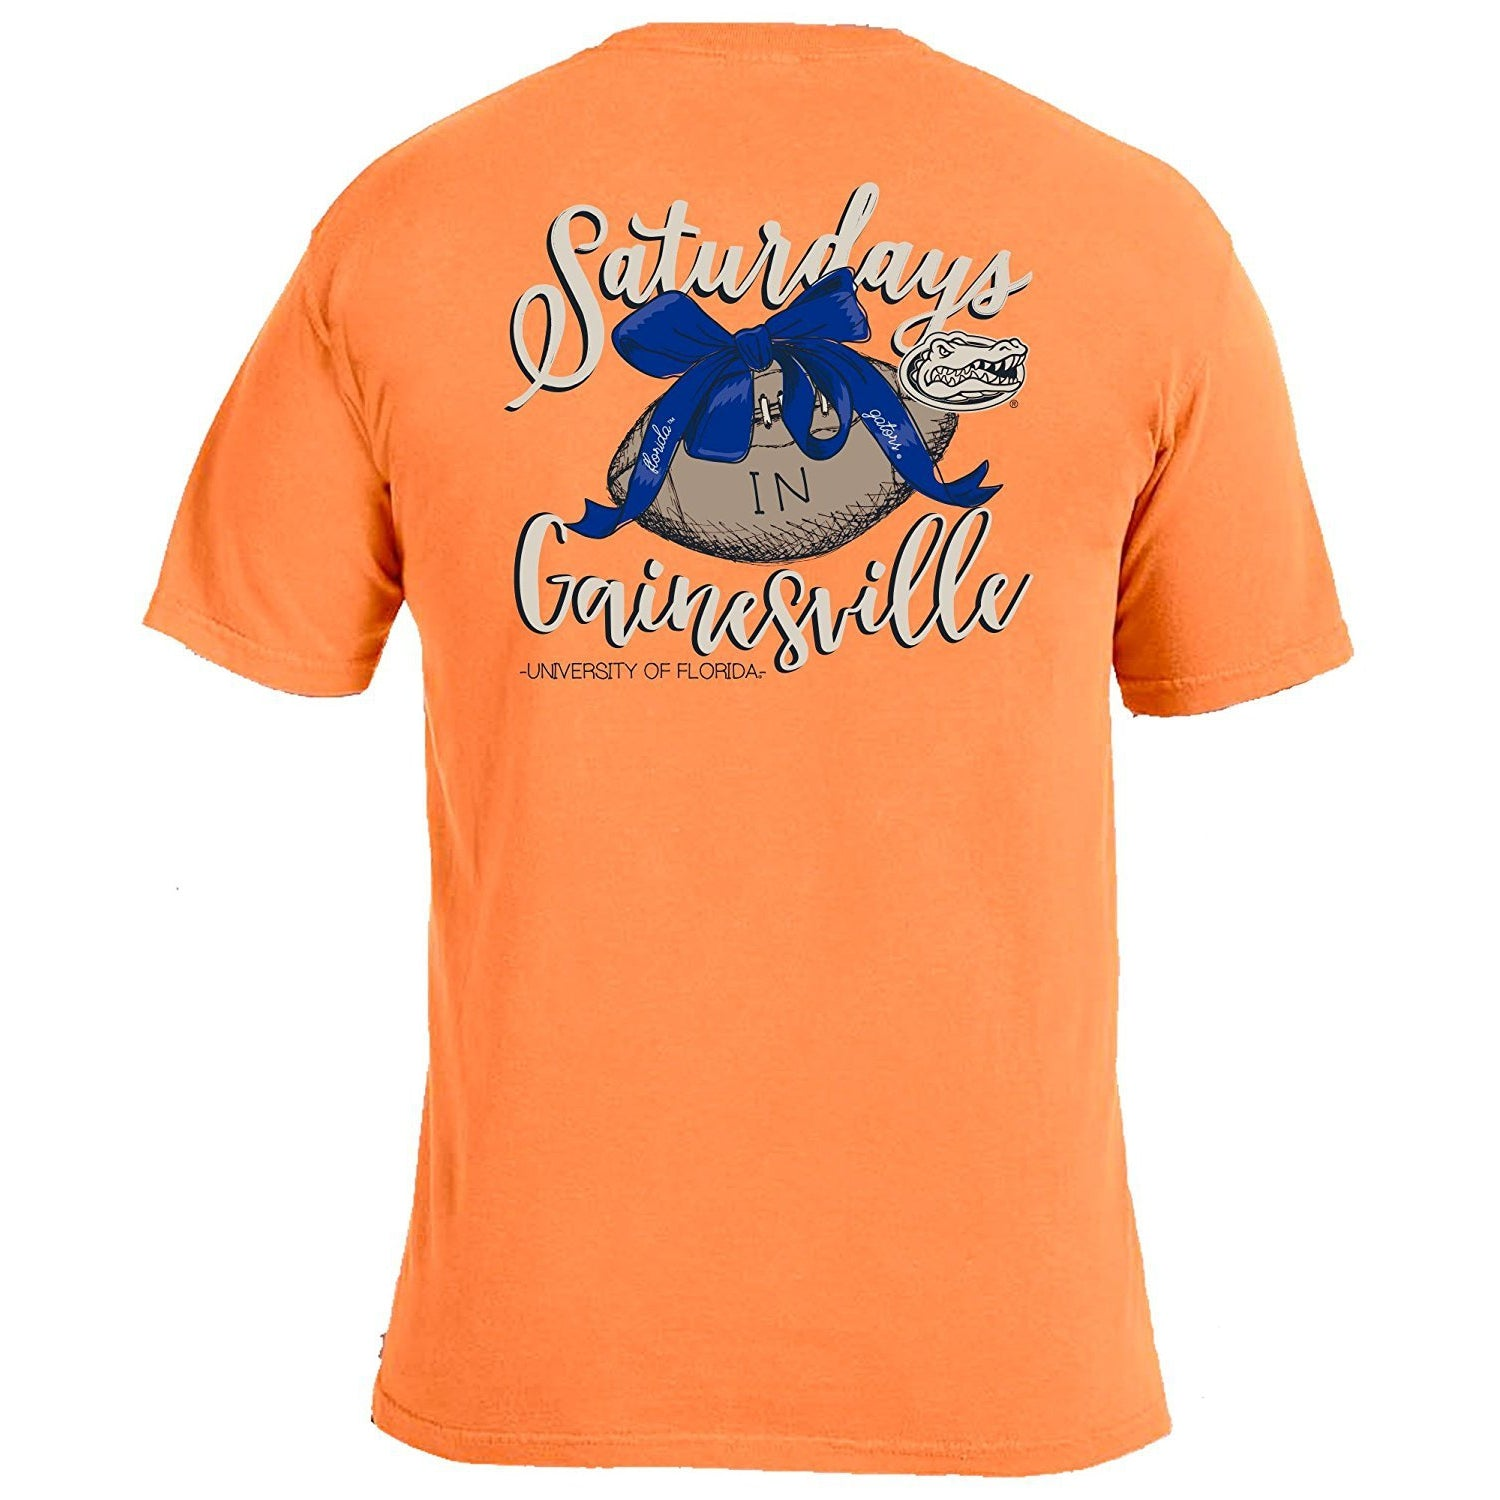 Laces and Bows Collegiate T-Shirt - Florida - Southern Ivy Boutique